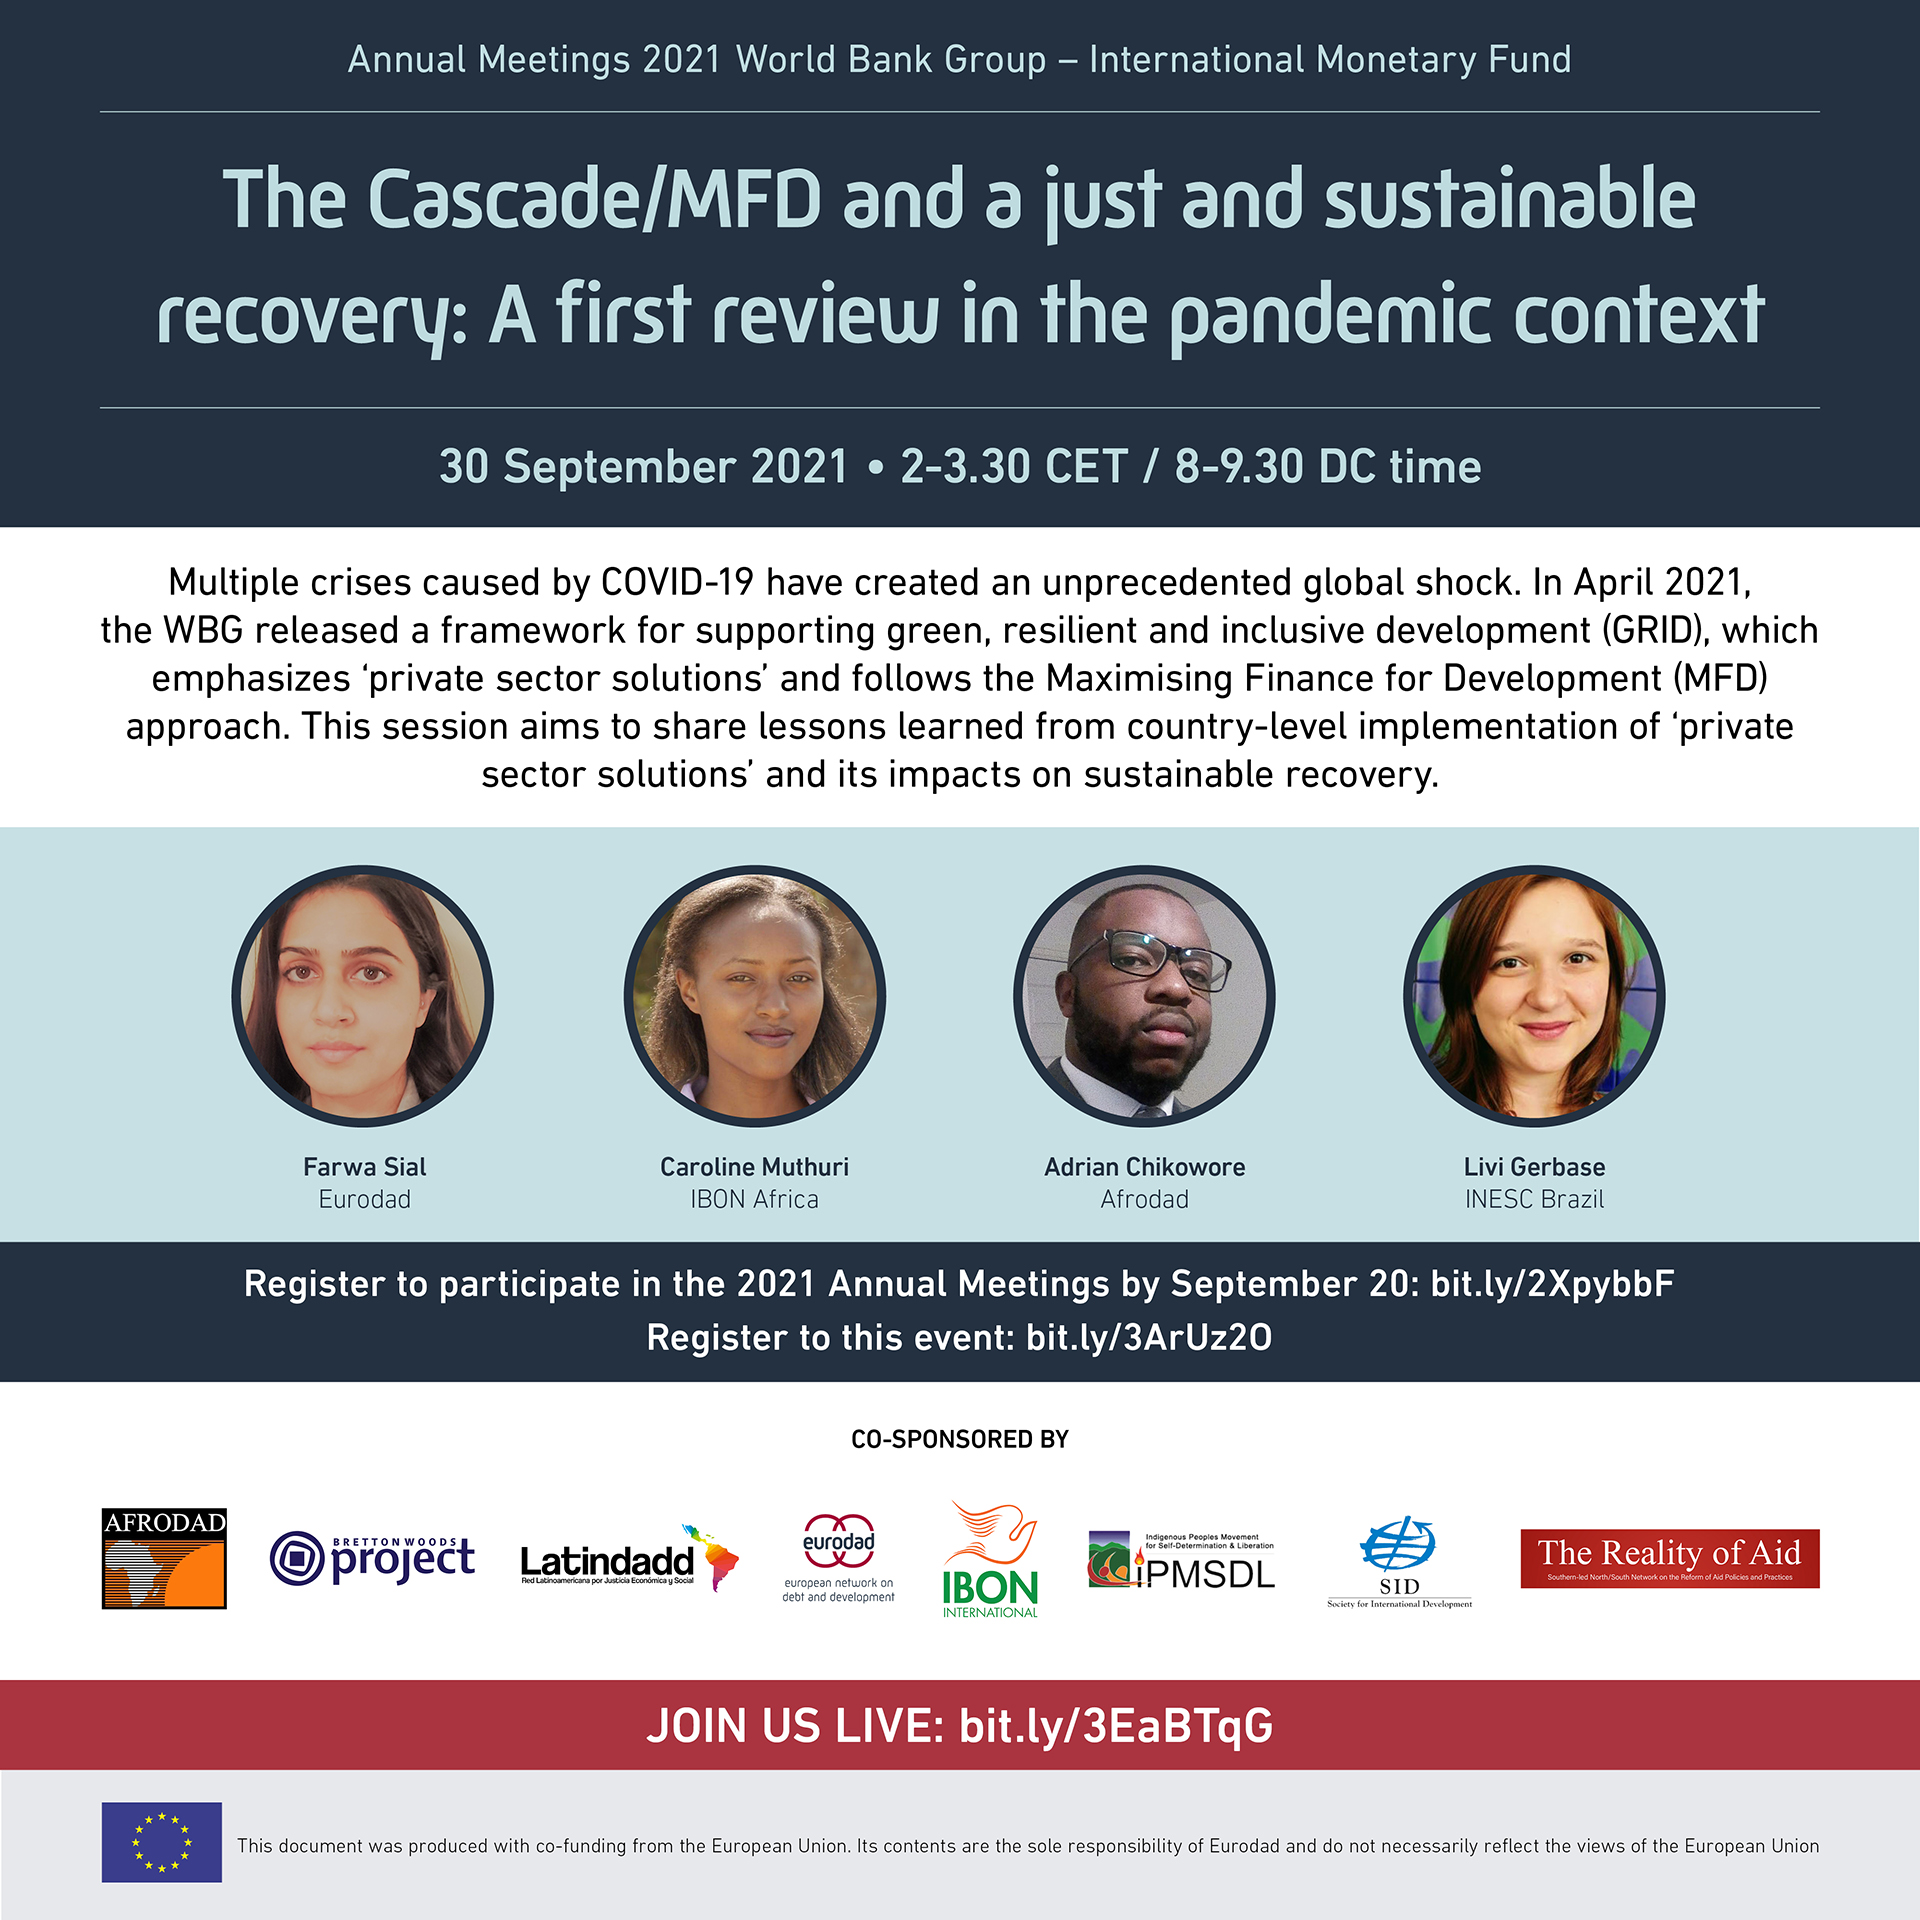 Online forum: The Cascade/MFD and a just and sustainable recovery: The first review in a pandemic context (September 30)